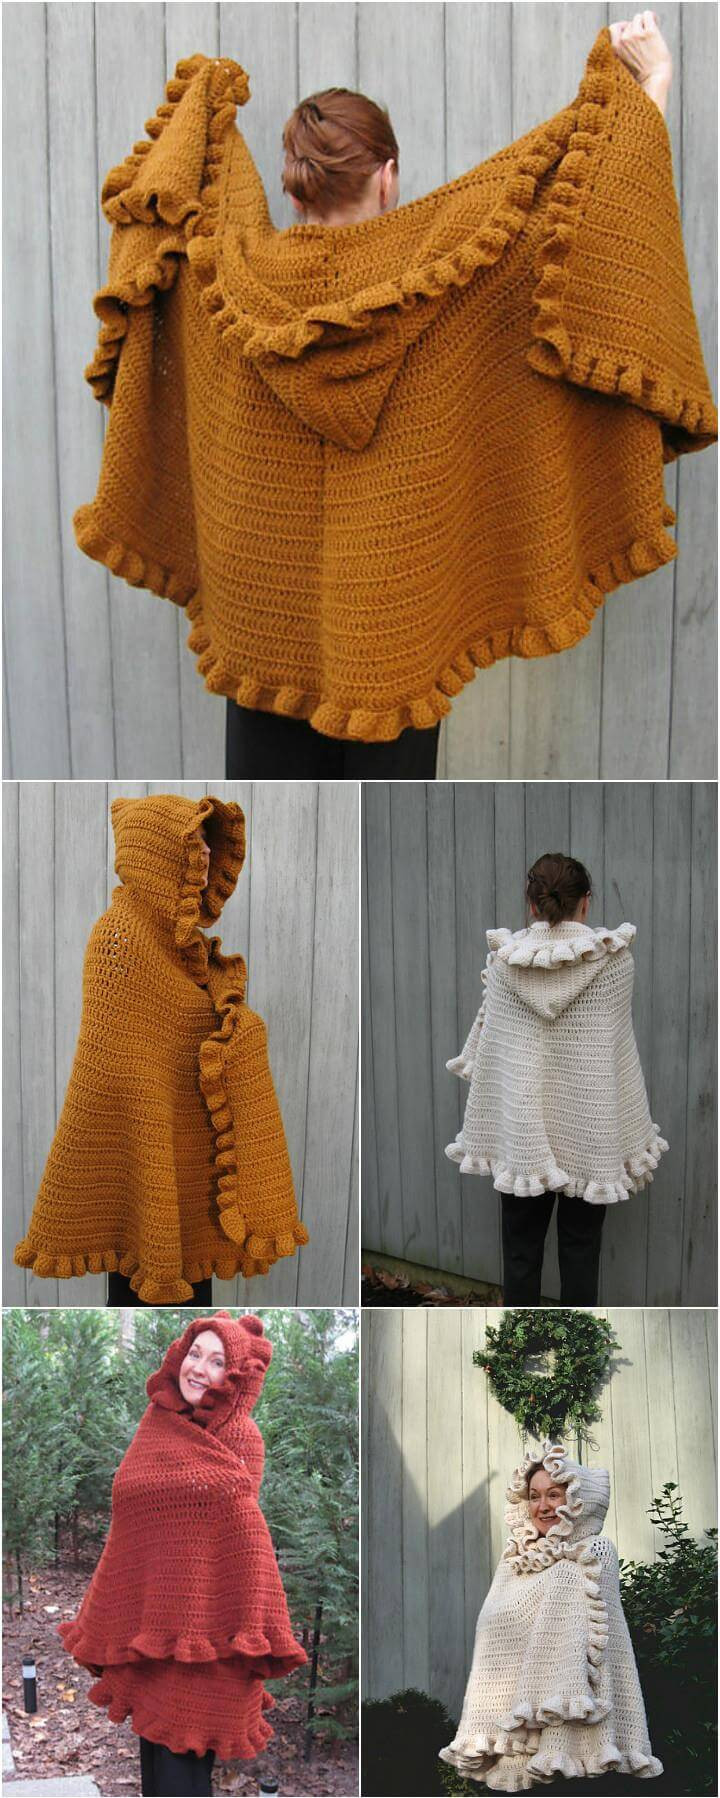 Crochet Shawl Pattern Best Of 10 Free Crochet Shawl Patterns for Women S Of Wonderful 50 Pics Crochet Shawl Pattern